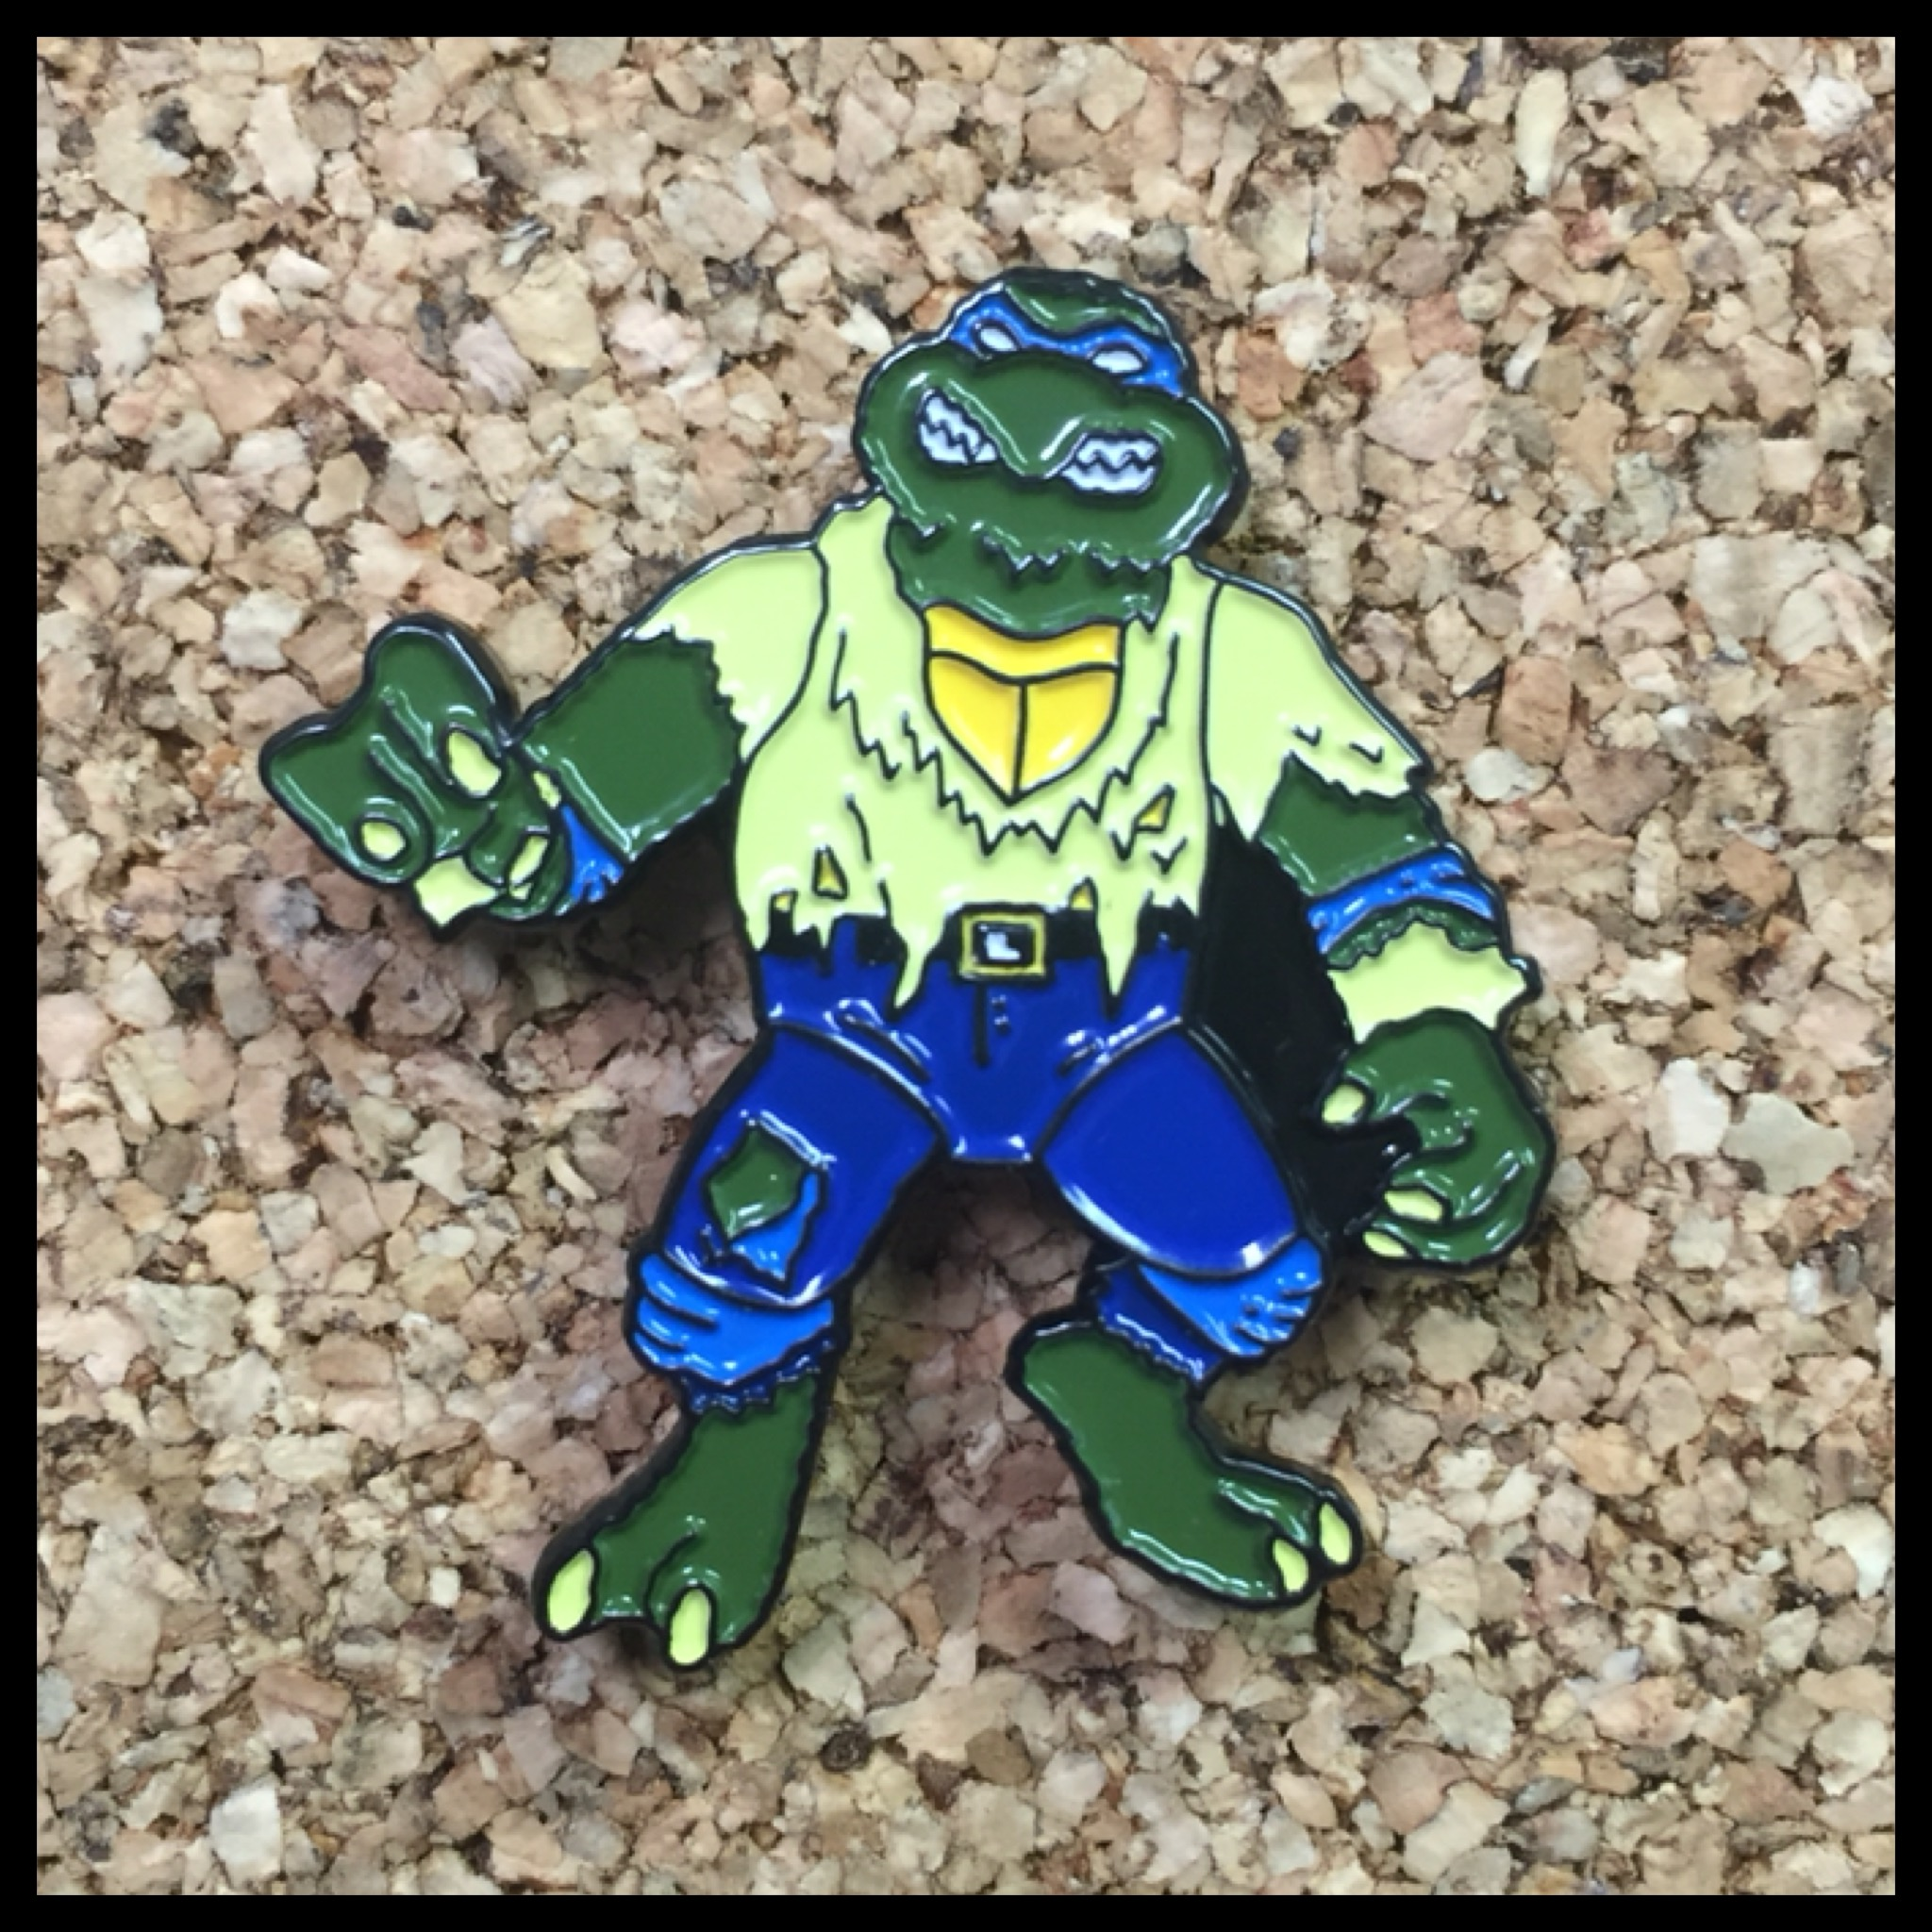 dbe67bb9c23 WOLFMAN TURTLE enamel pin · tittybats · Online Store Powered by Storenvy